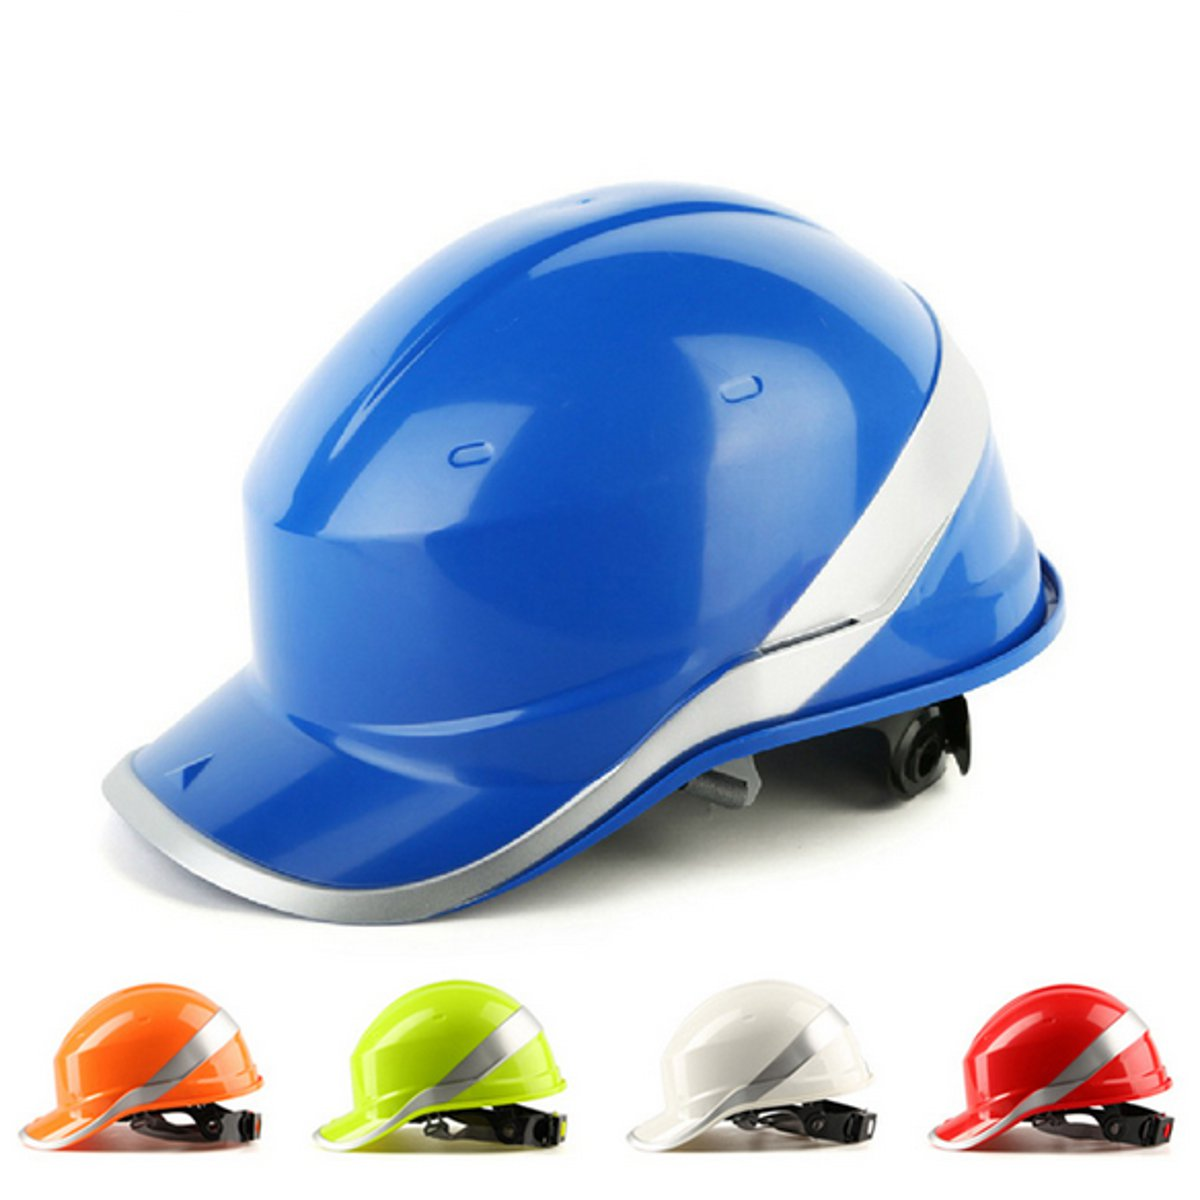 NEW Safurance Safety Hard Hats 8 Point  Construction Work Protective Helmets  ABS Insulation Material Protect Helmets high quality helmets hard hat y class of chinese standards safety helmets breathable abs anti smashing hard hats